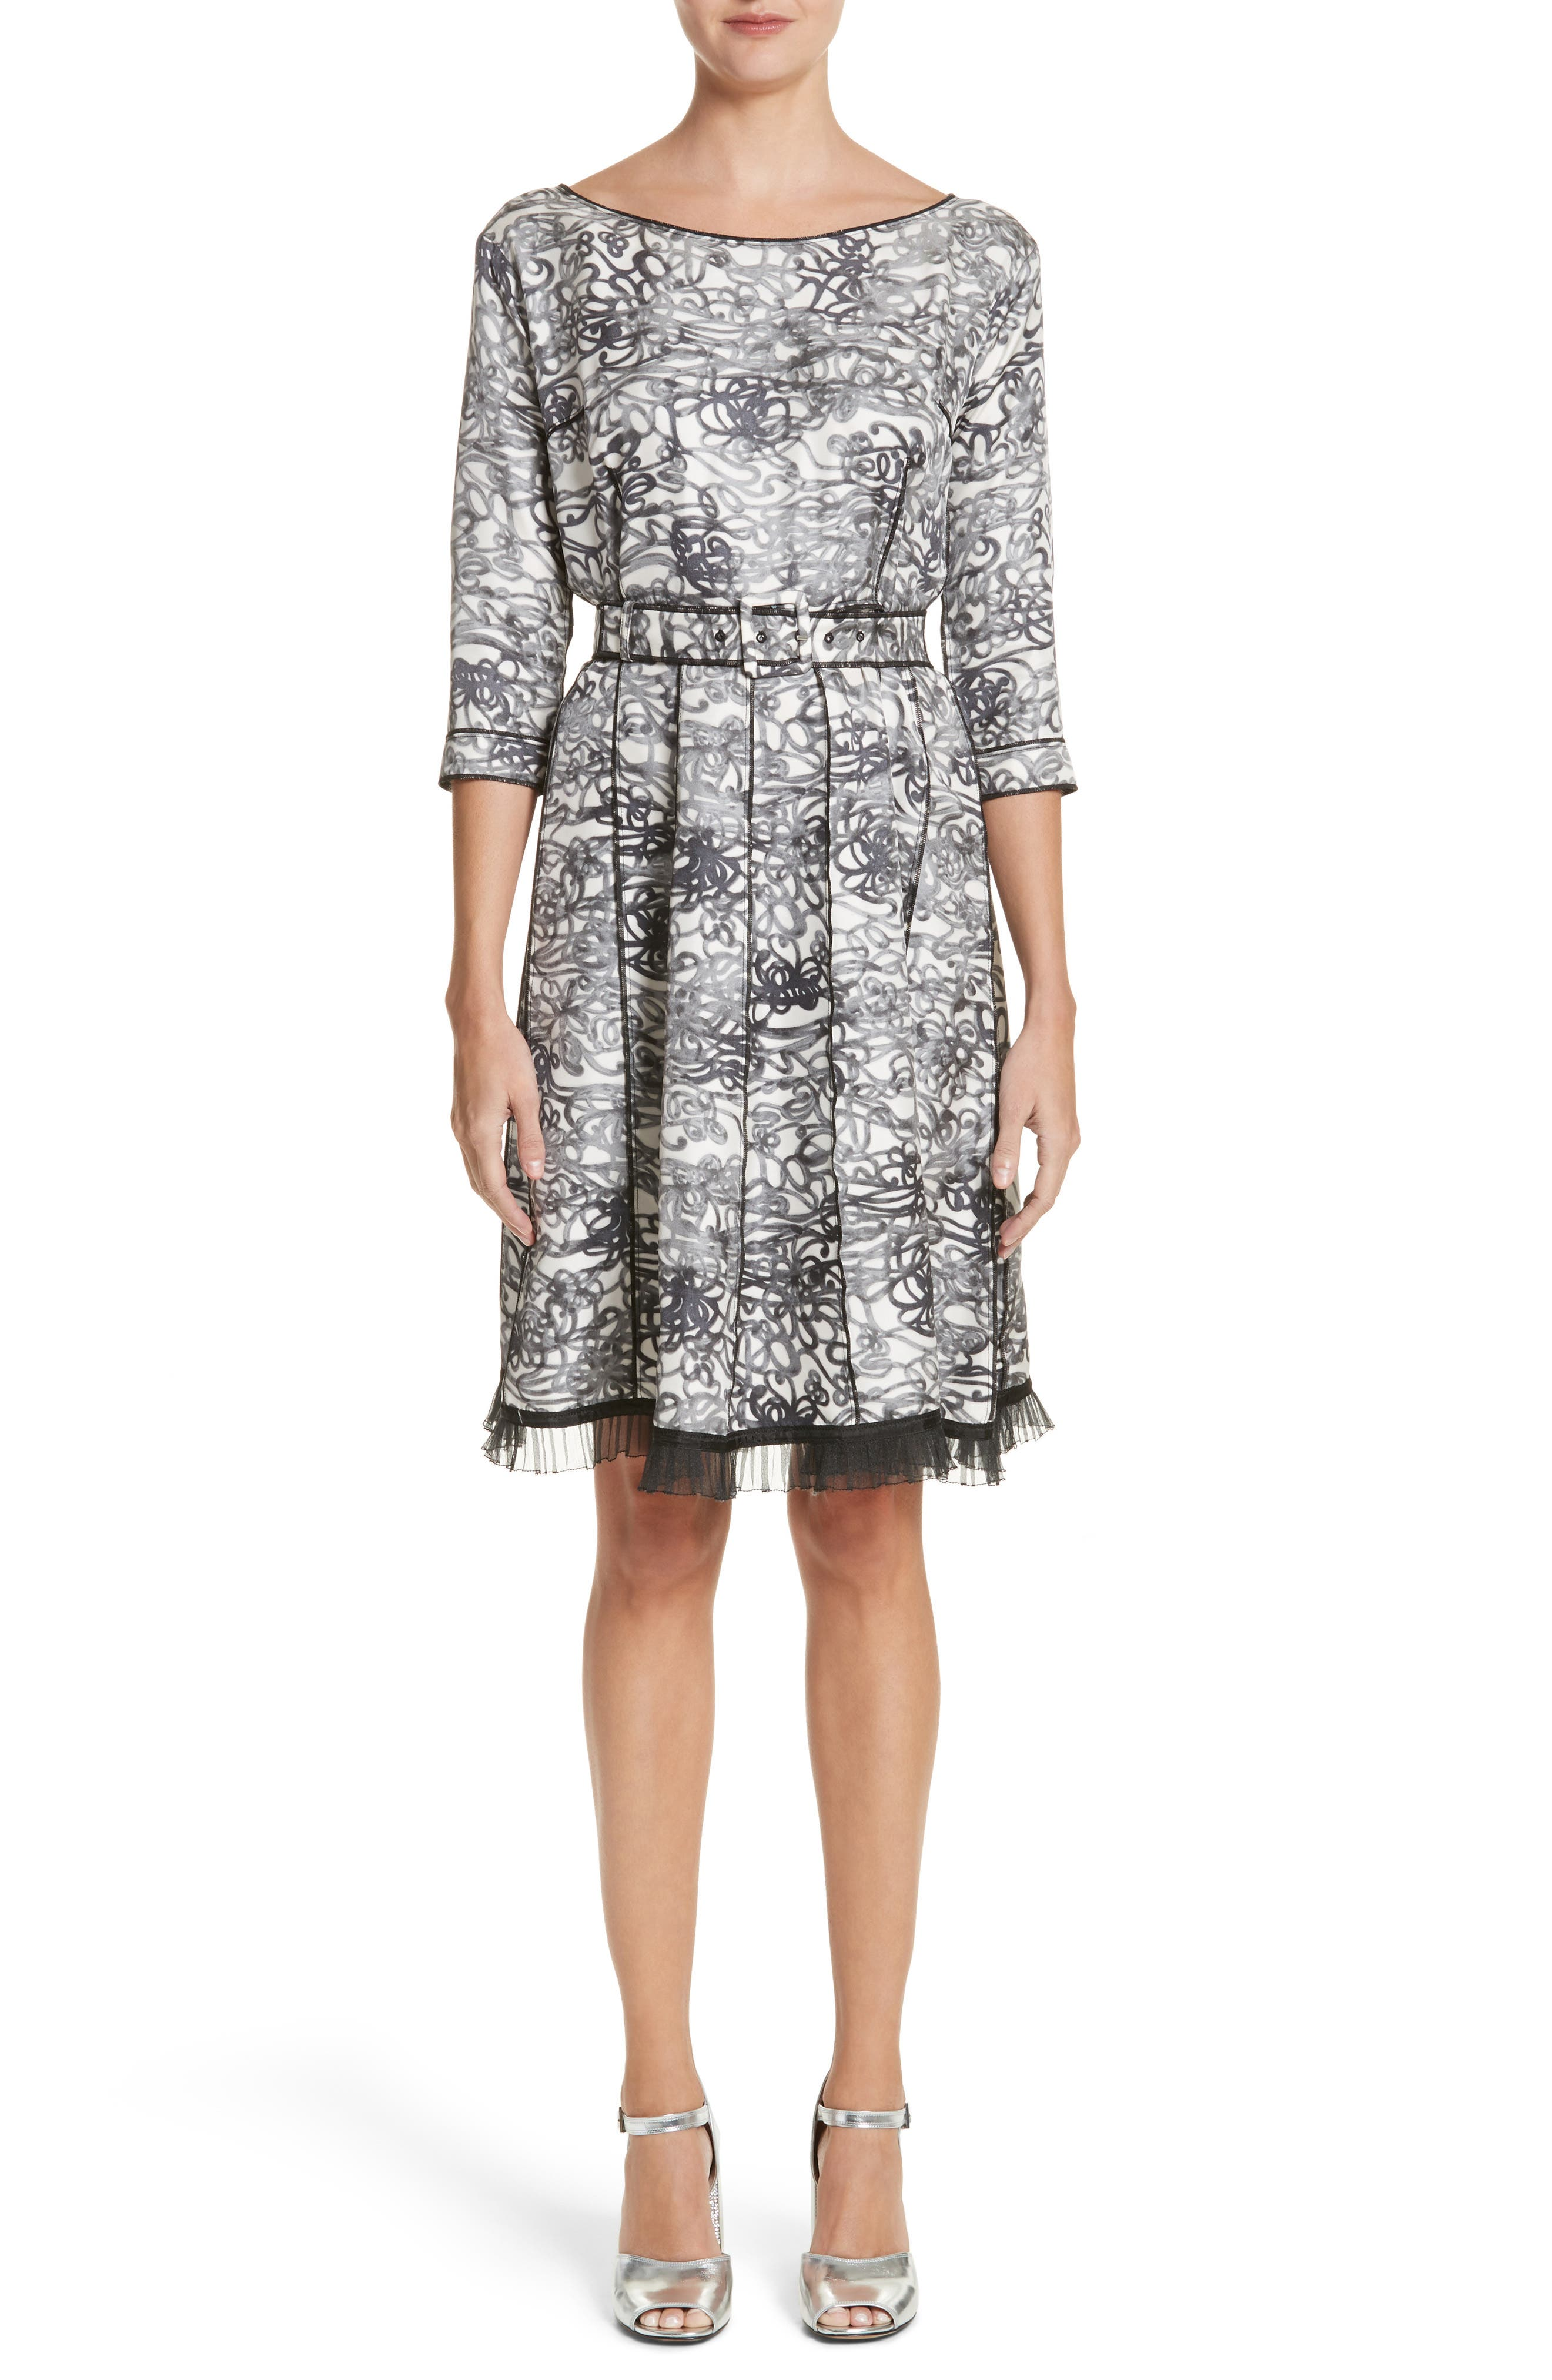 MARC JACOBS Squiggle Print Gored Dress